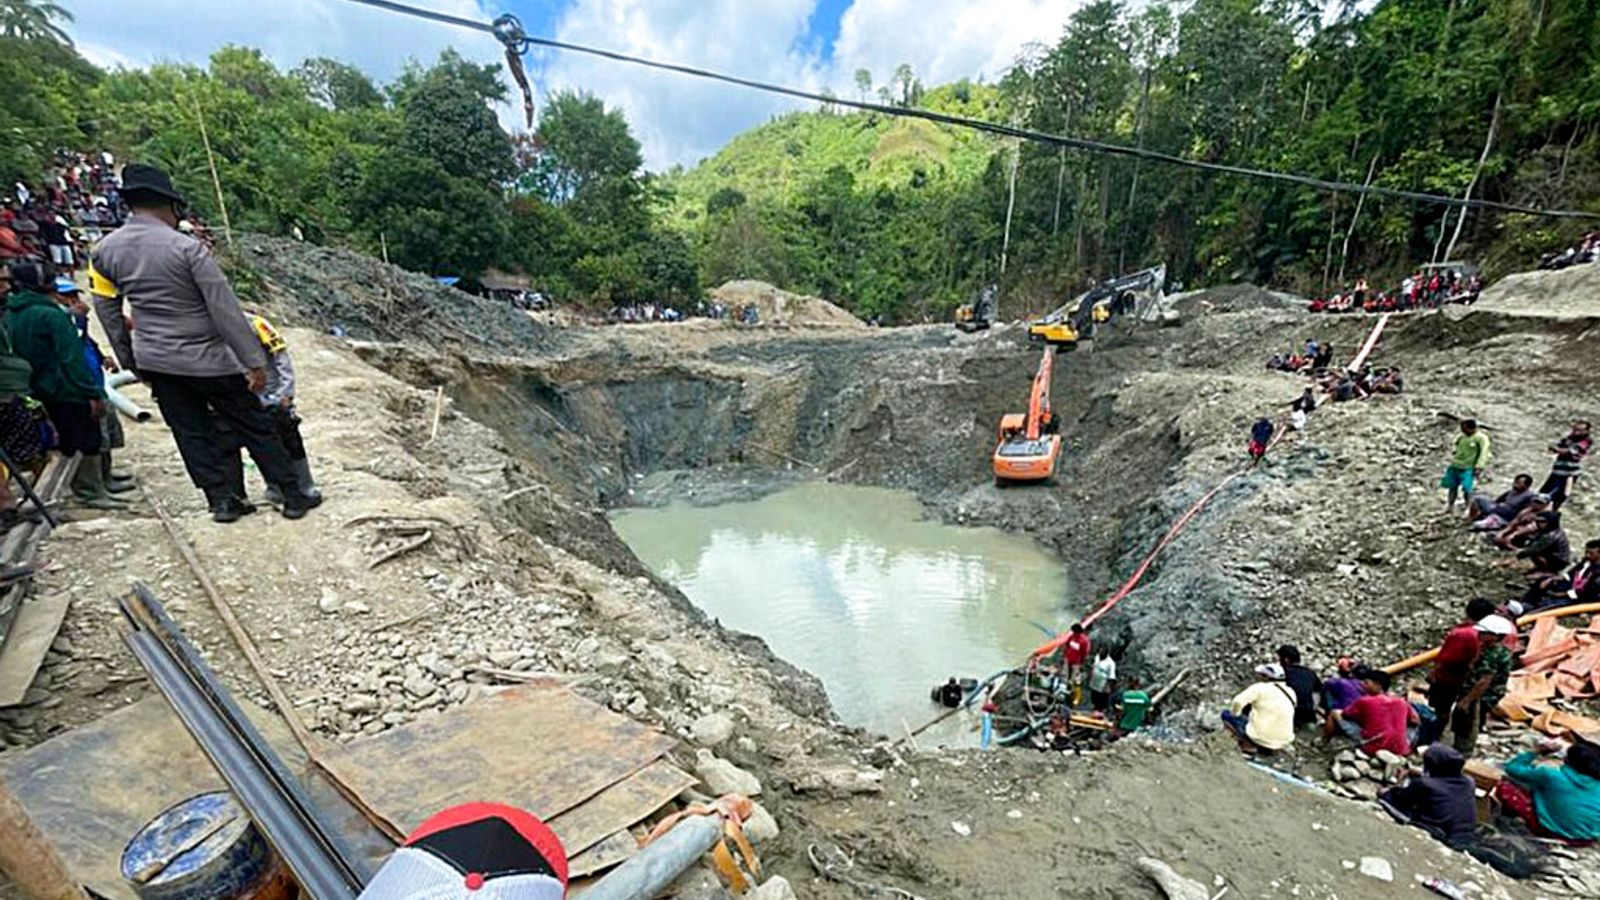 Six killed and one missing after illegal gold mine in Indonesia collapses